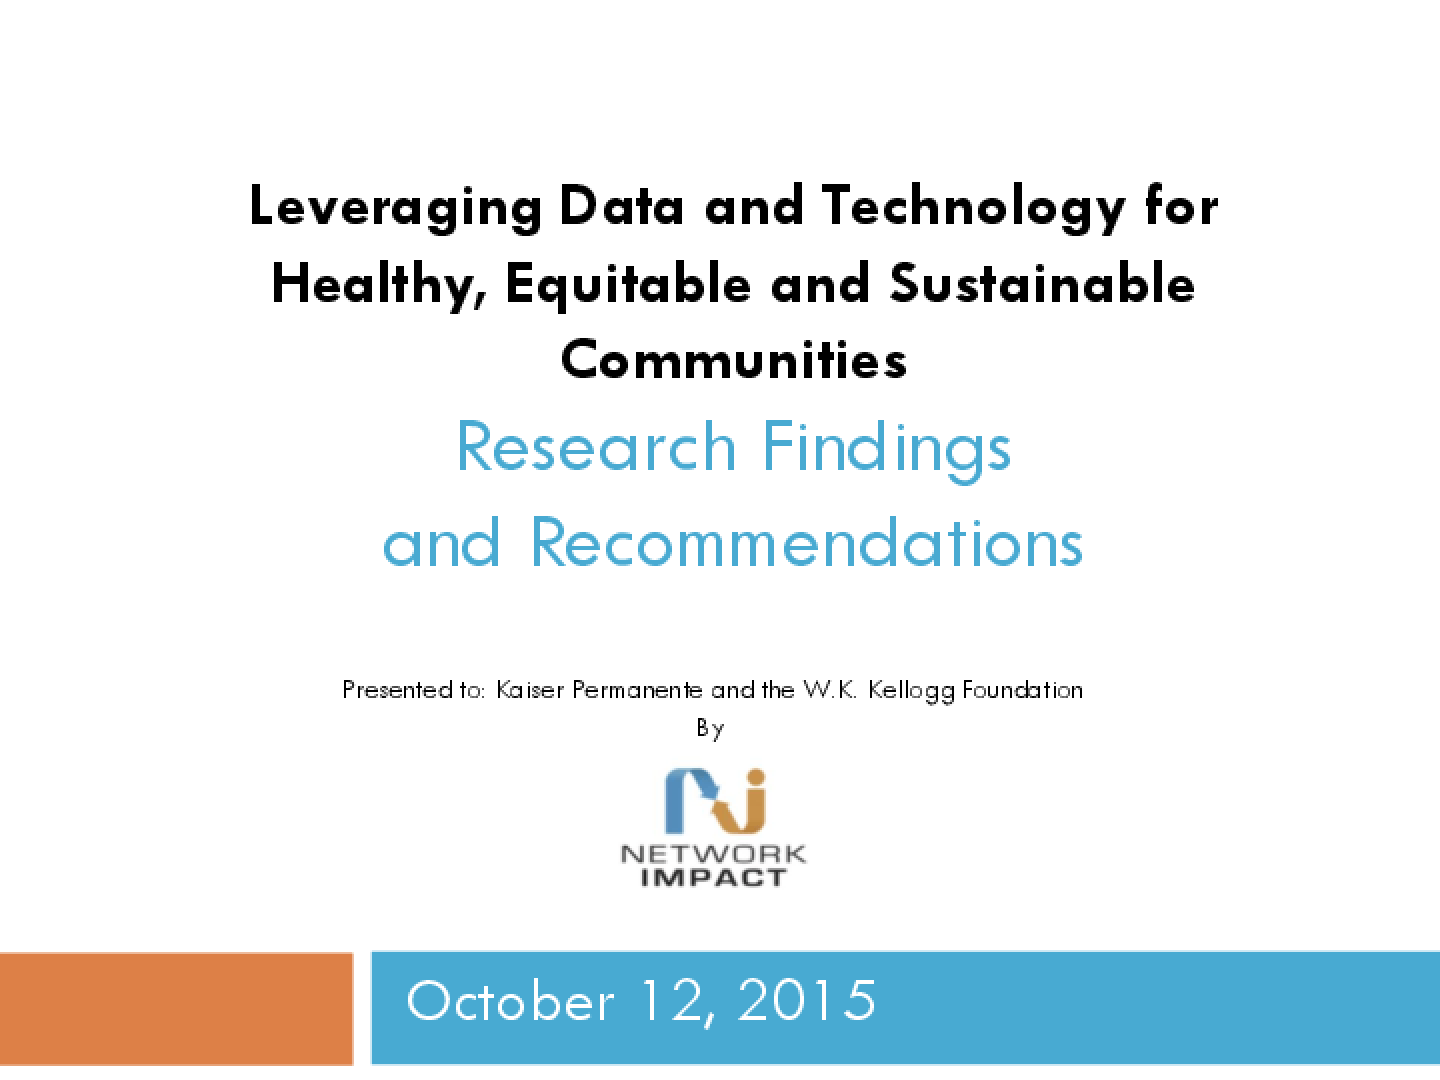 Leveraging Data And Technology For Healthy, Equitable, Sustainable Communities